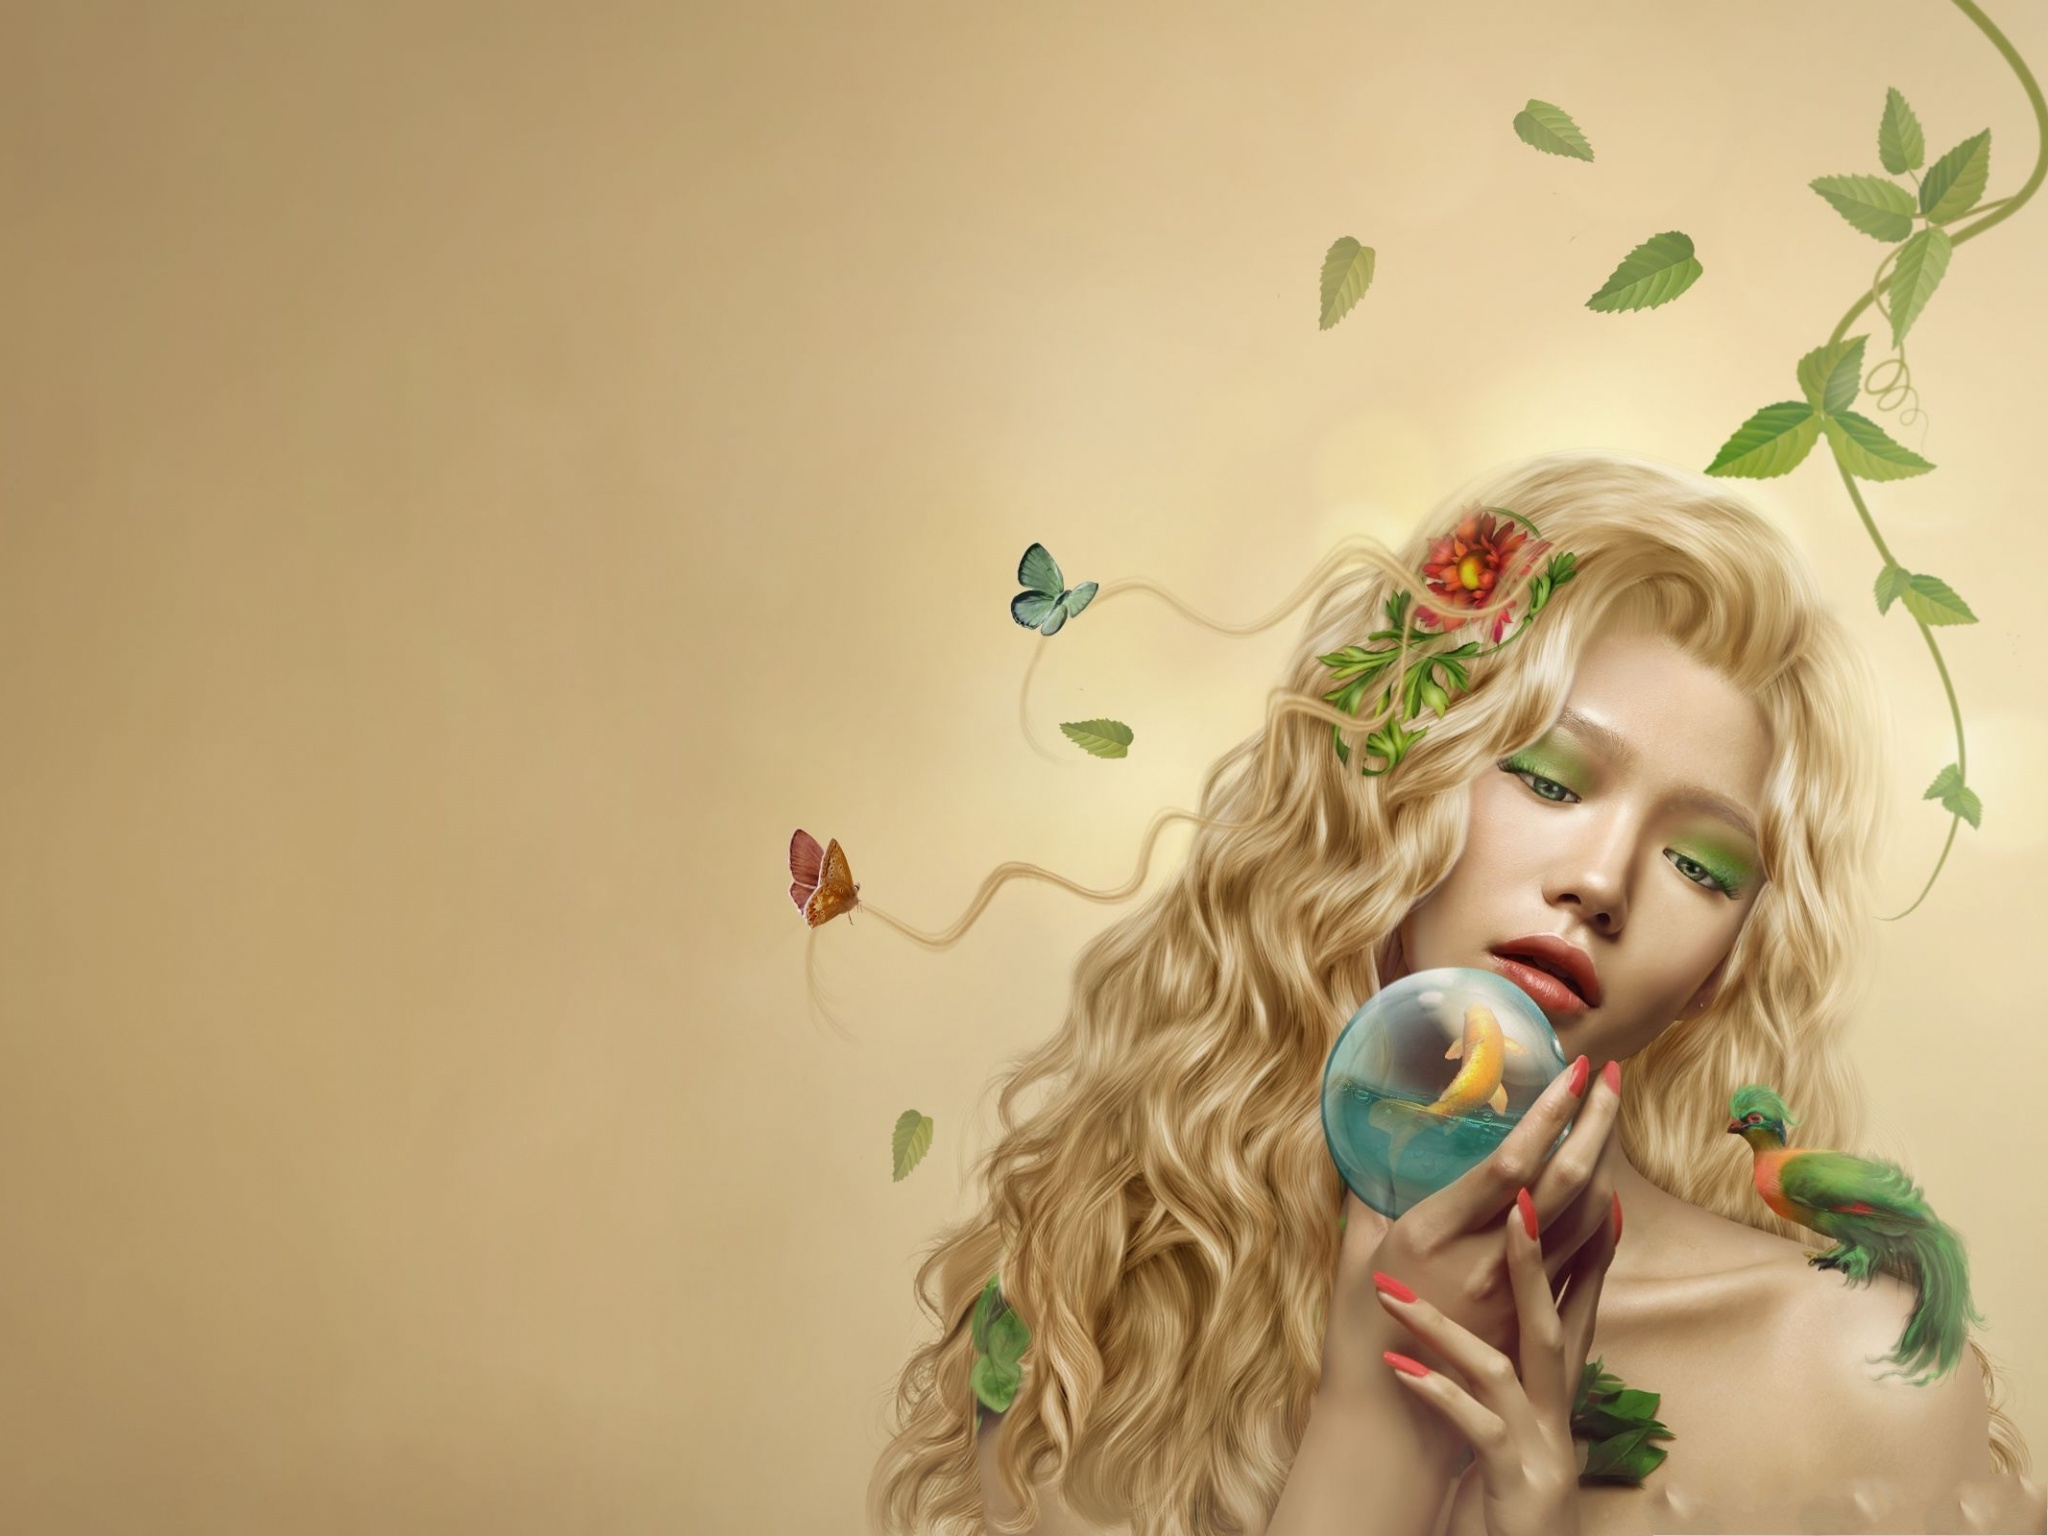 click to free download the wallpaper--Beautiful Girls Image, Dreaming Blonde Girl in Crystal Ball, Beautiful Butterflies 2048X1536 free wallpaper download